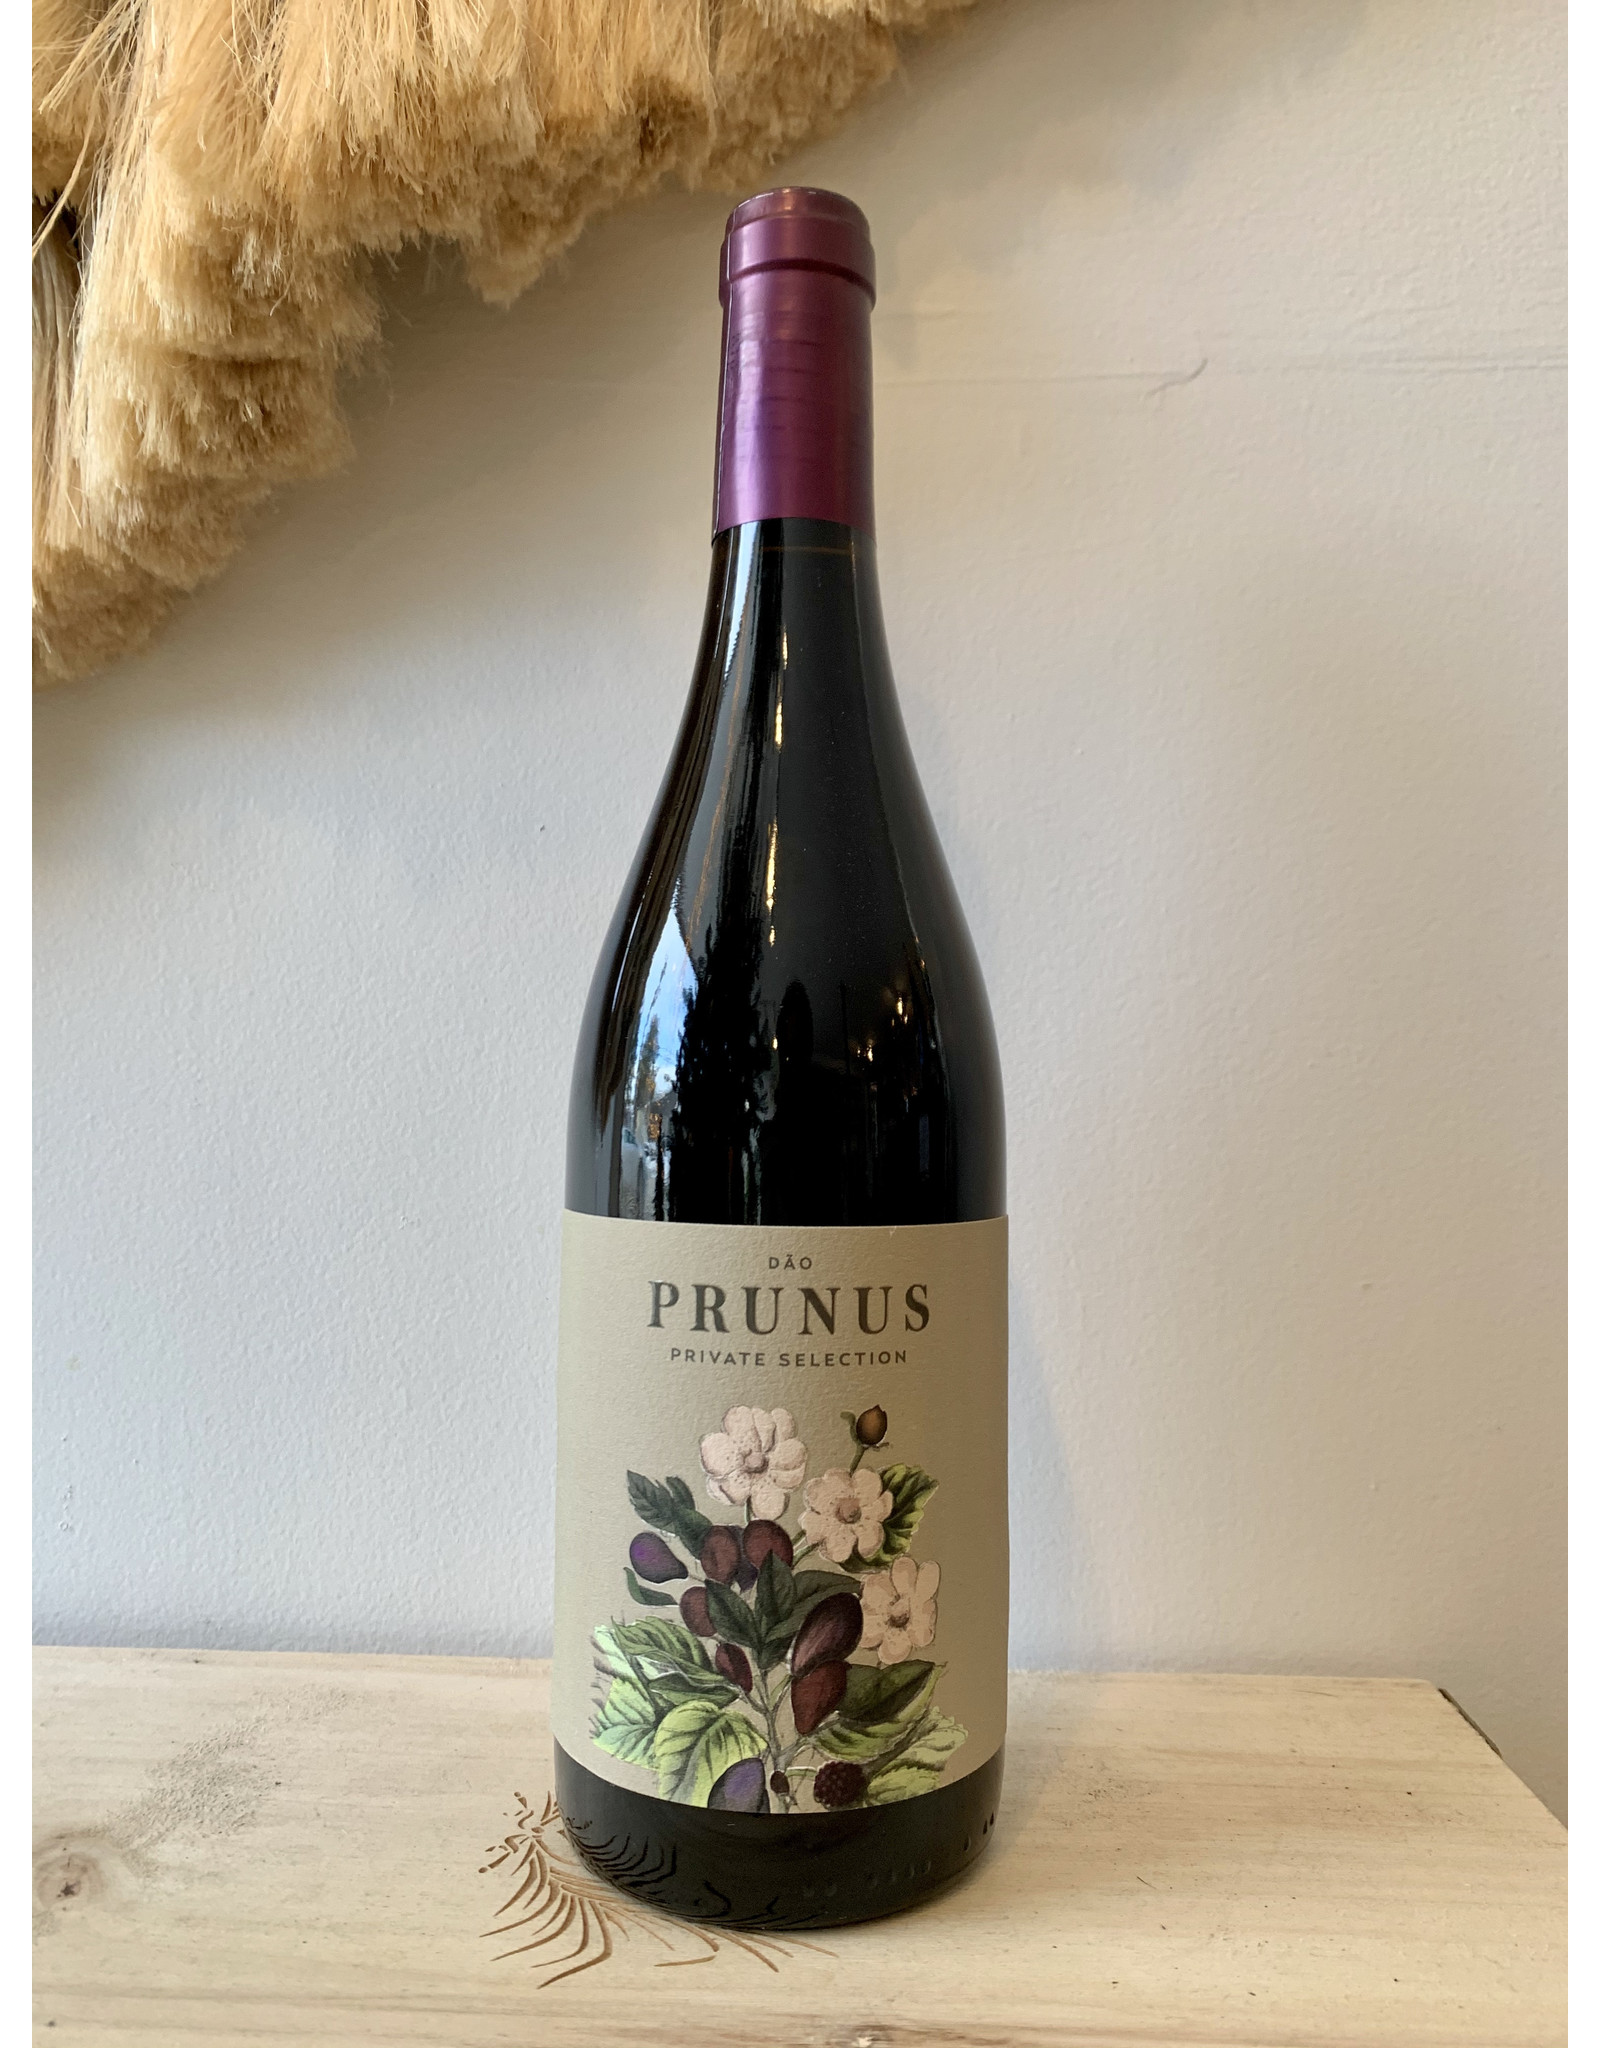 Gota Wine Prunus Dão Private Selection Tinto 2017